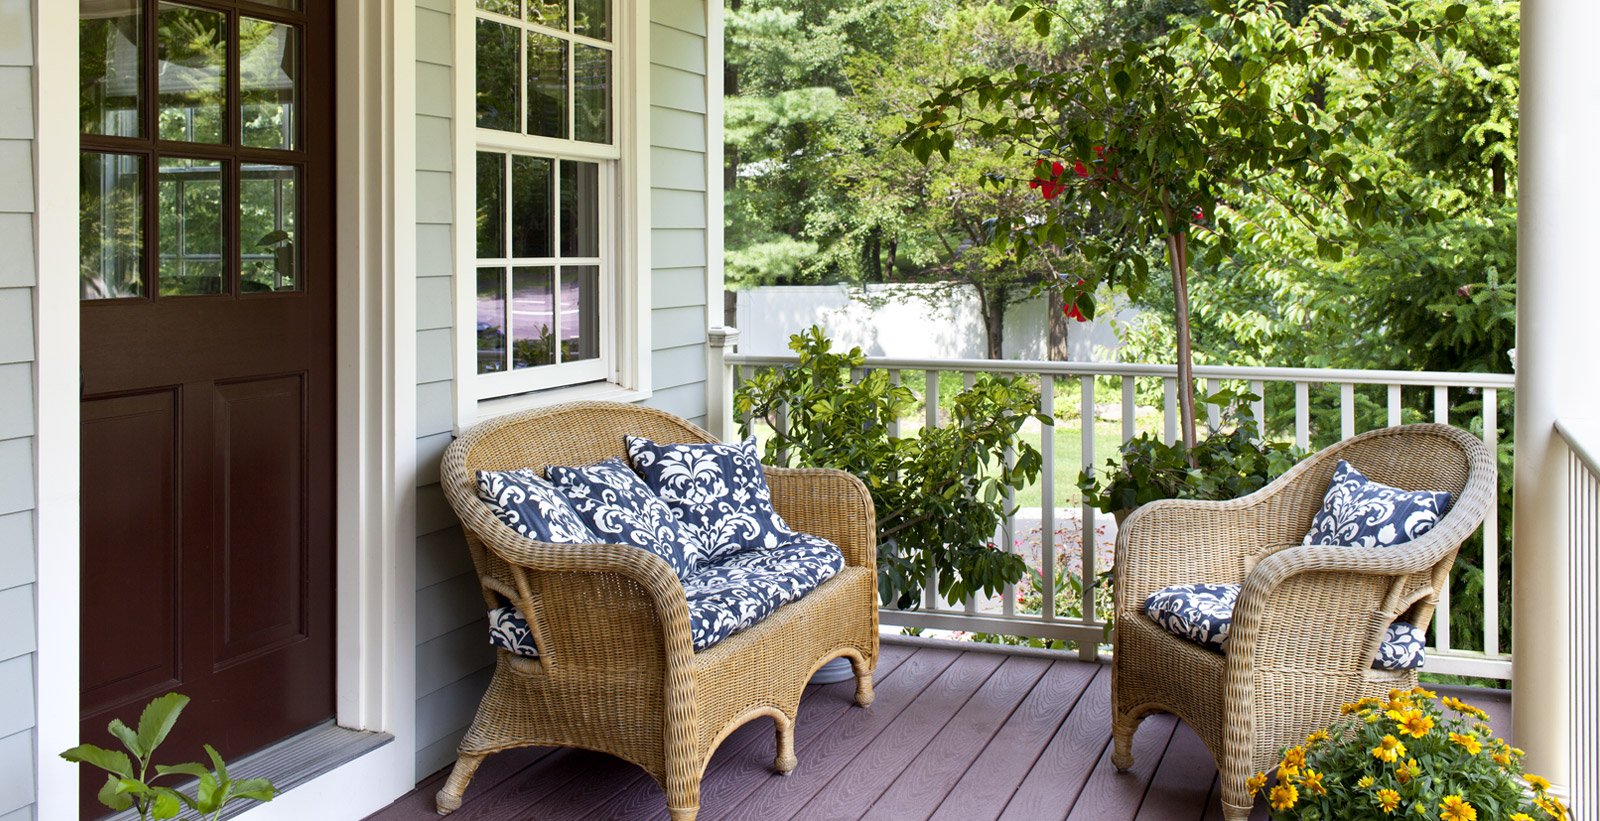 Wicker loveseat and chair on a wooden porch.